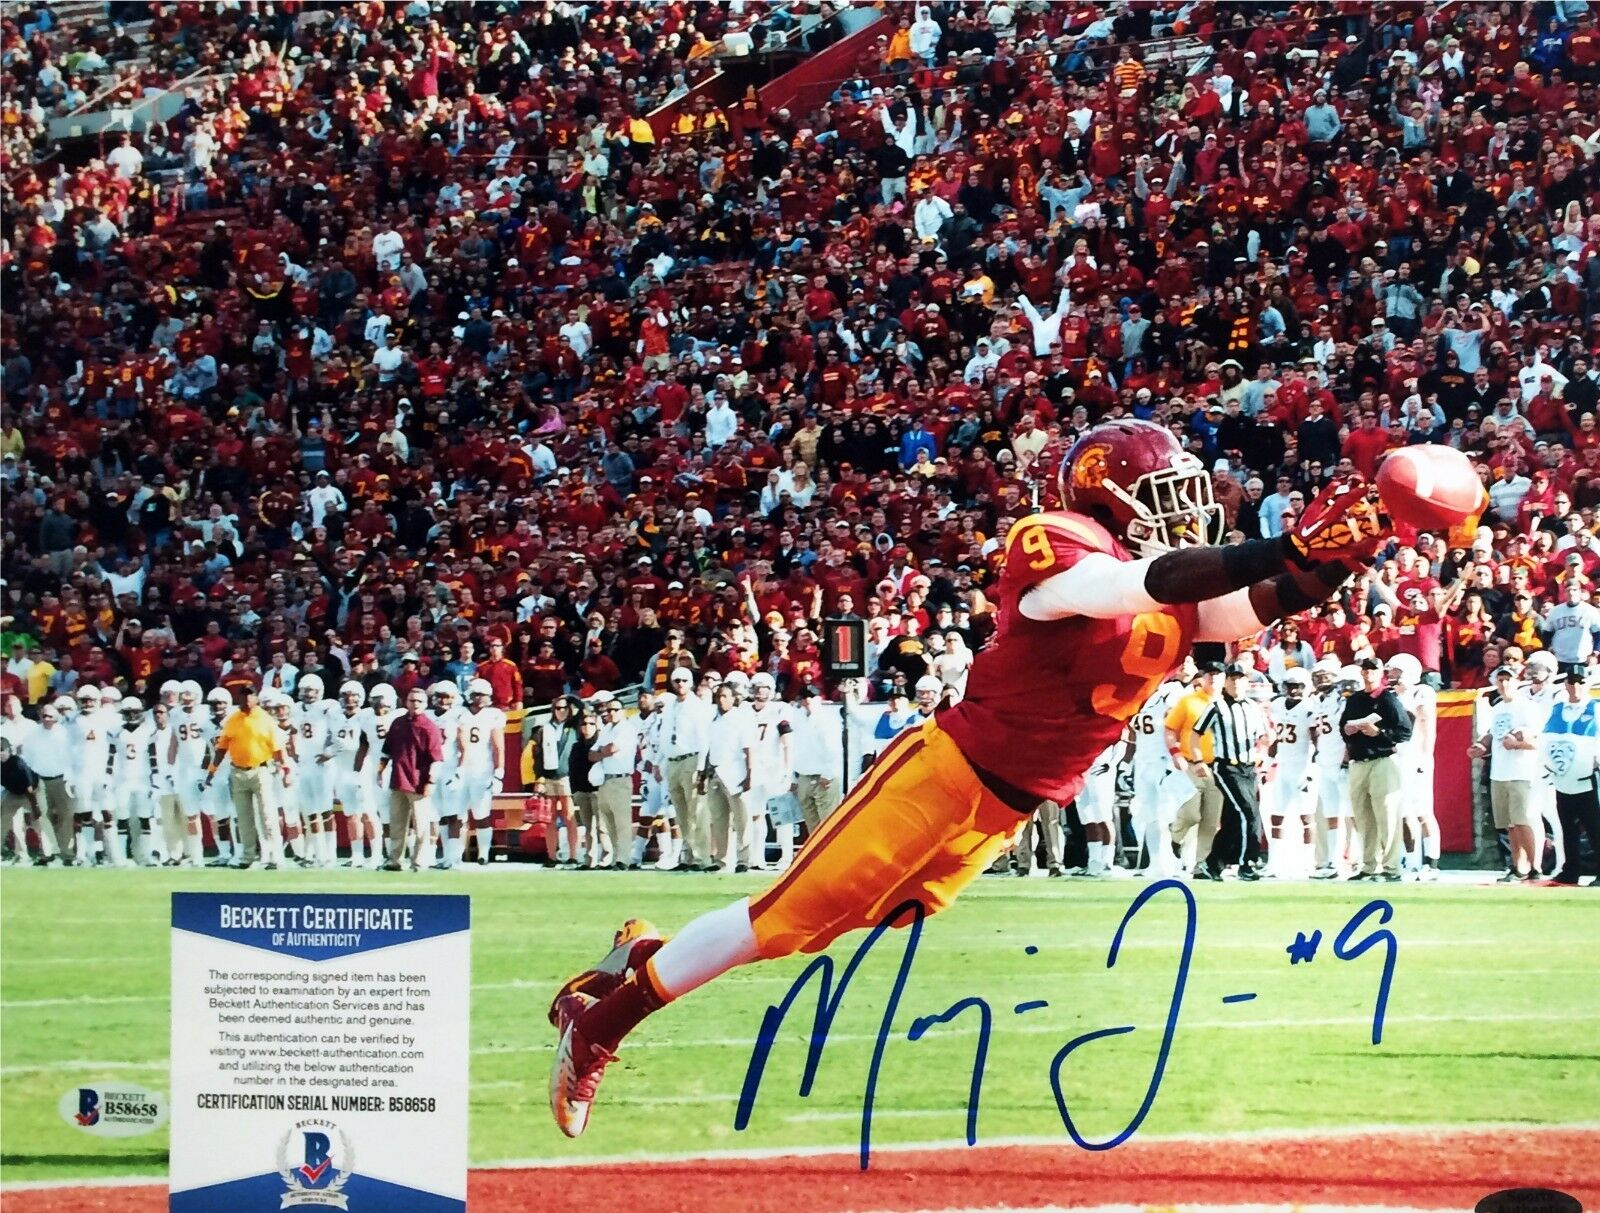 USC Jacksonville Jaguars Marqise Lee Signed 11x14 photo BAS Cert # B 58658